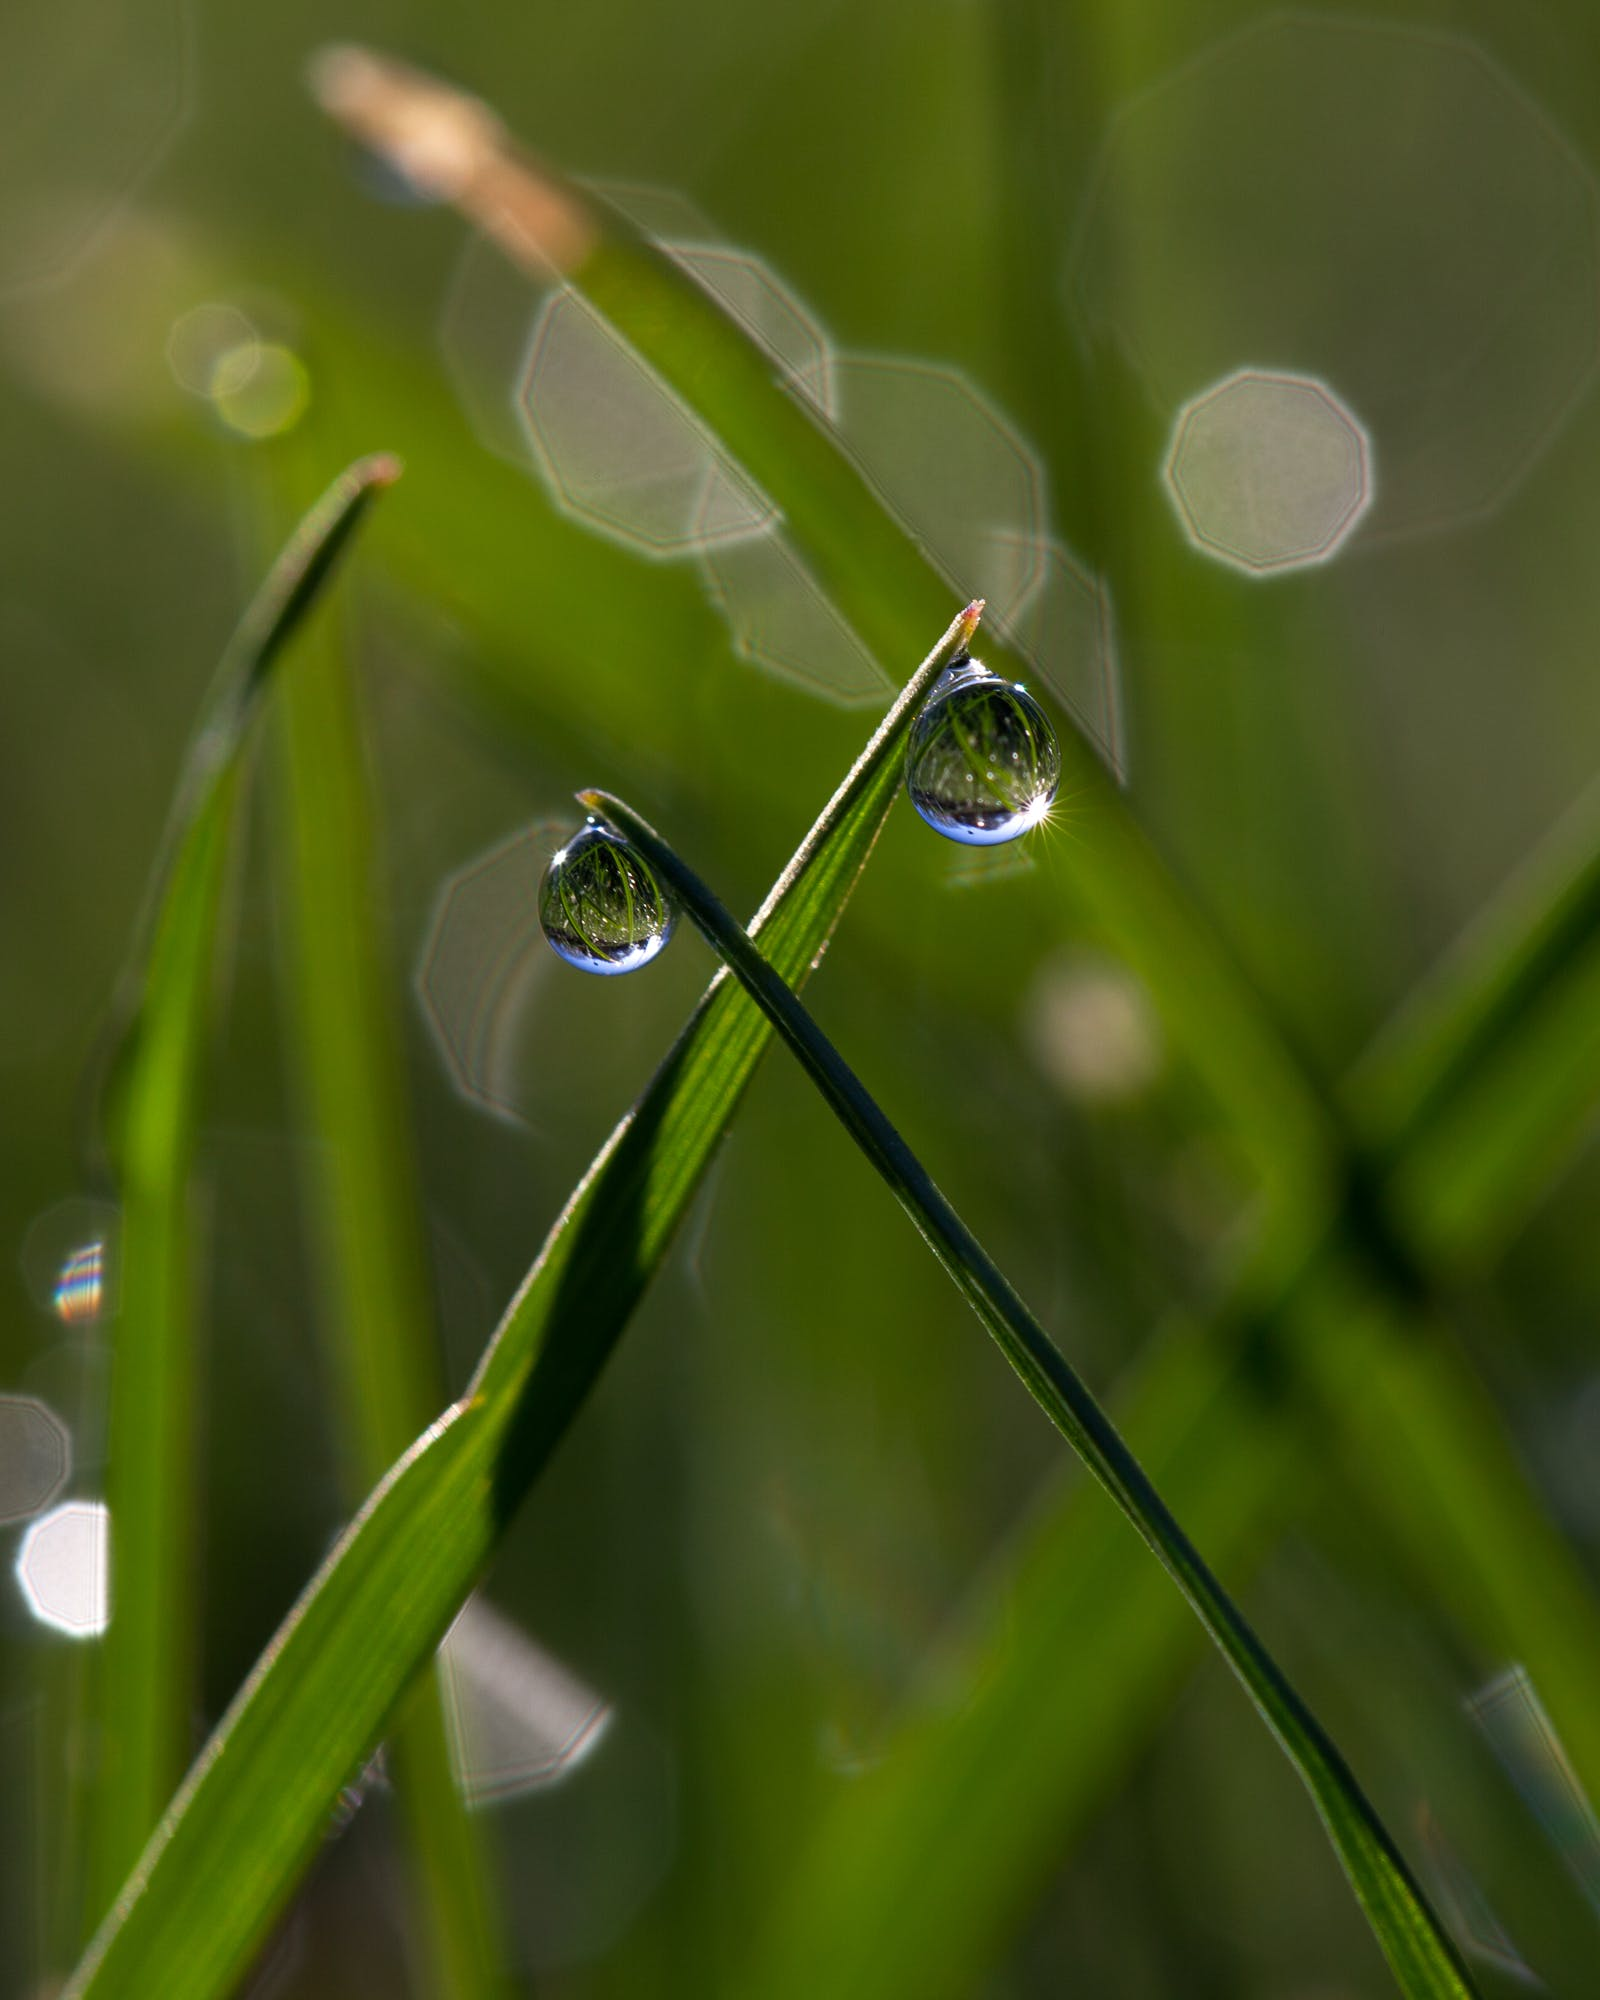 Free stock photo of dew, dew drops, droplets, grass